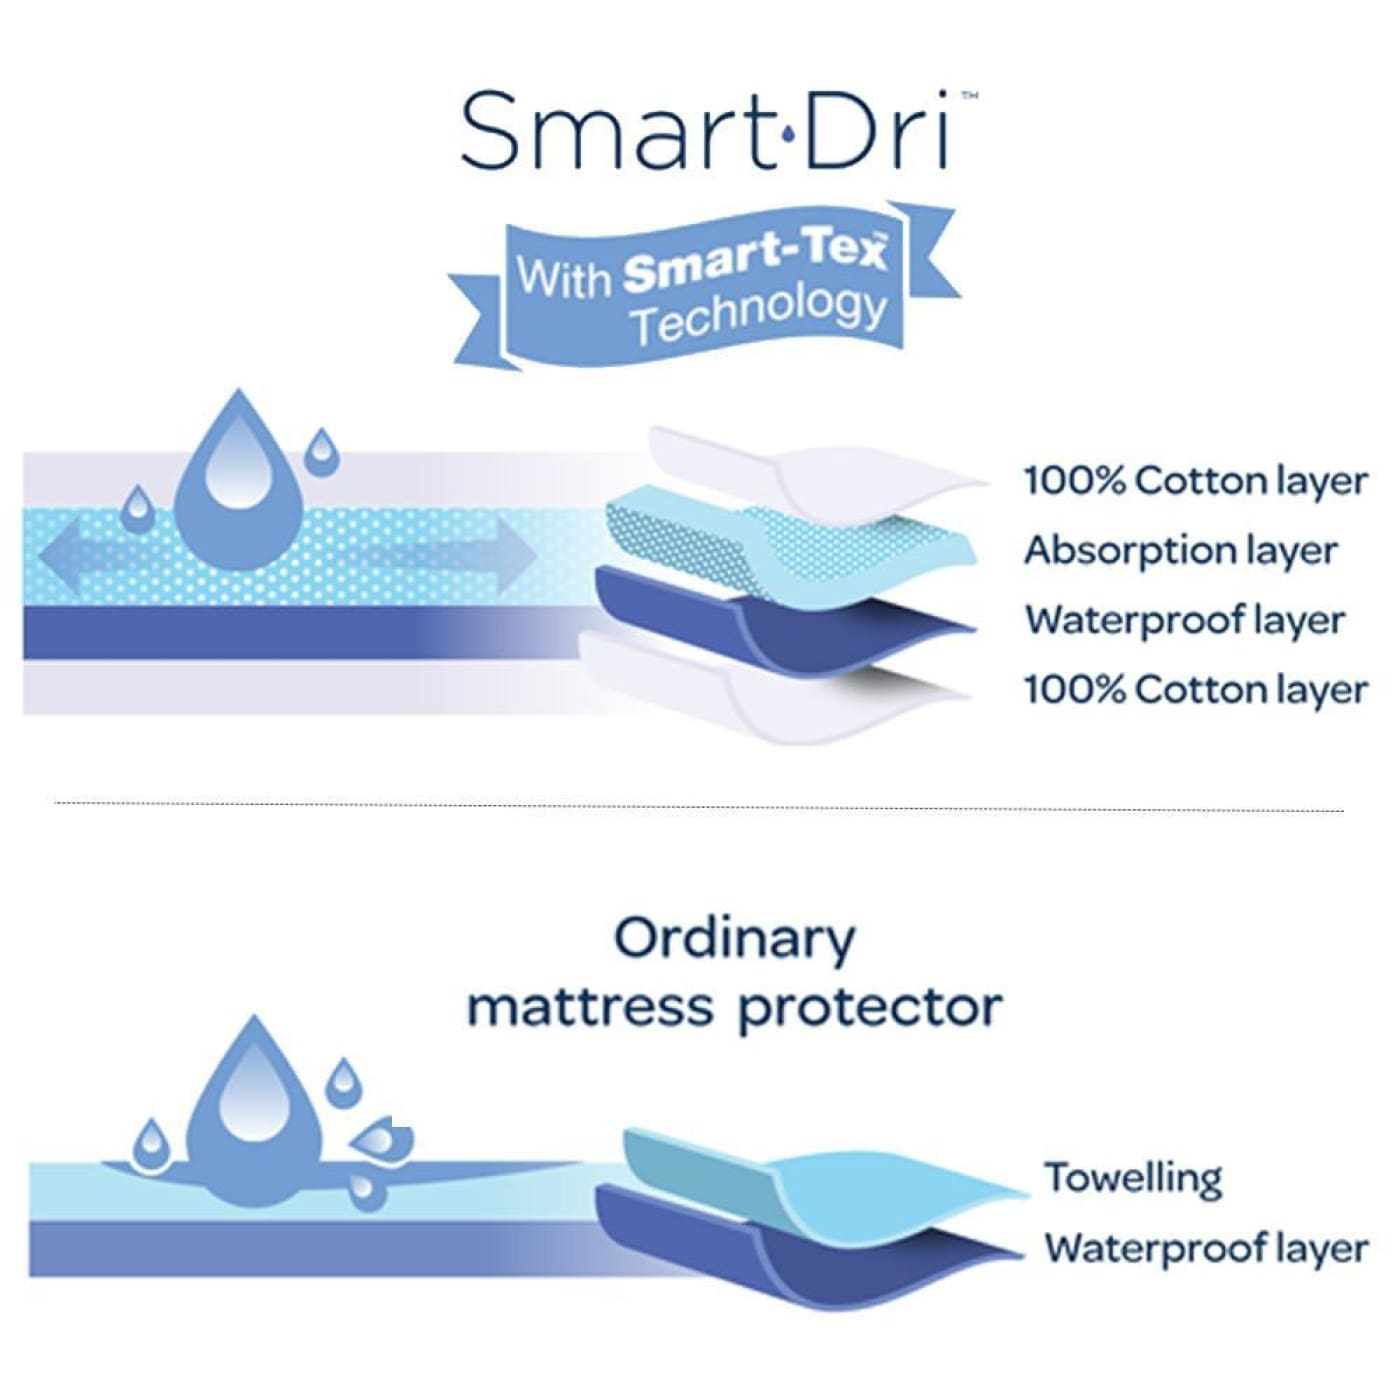 Living Textiles Smart-Dri Mattress Protector - Cradle - NURSERY & BEDTIME - BASS/CRADLE/COSLEEP MATT PROT